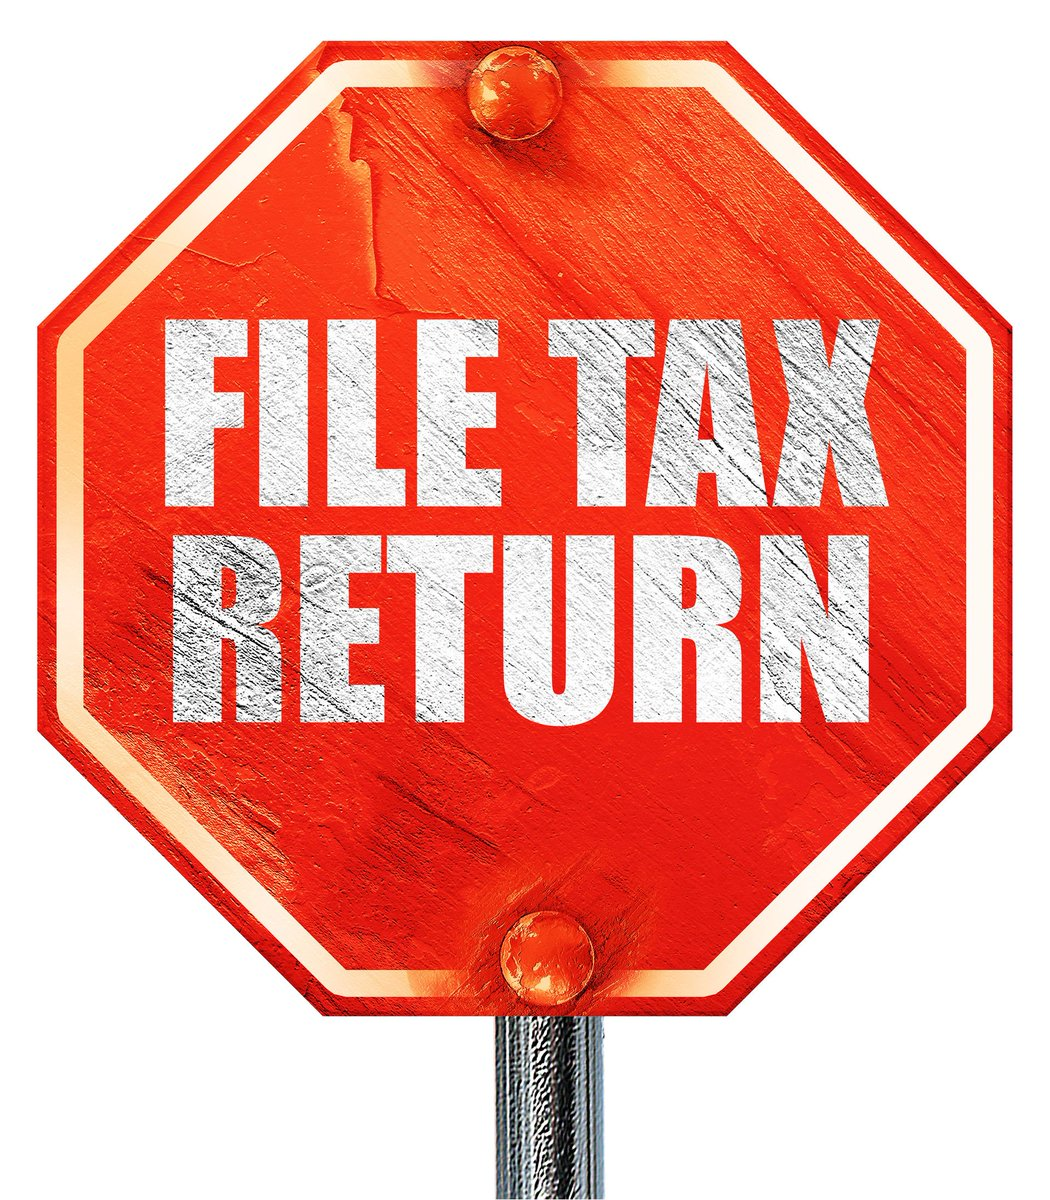 self assessment paper return address Filing self assessment paper forms if you're registered for self assessment, you must complete a tax return each year, even if you have no tax to pay this can be done online or using self assessment paper forms, however if you are filing yours on paper, this must be returned to hmrc by midnight on 31st october 2014.